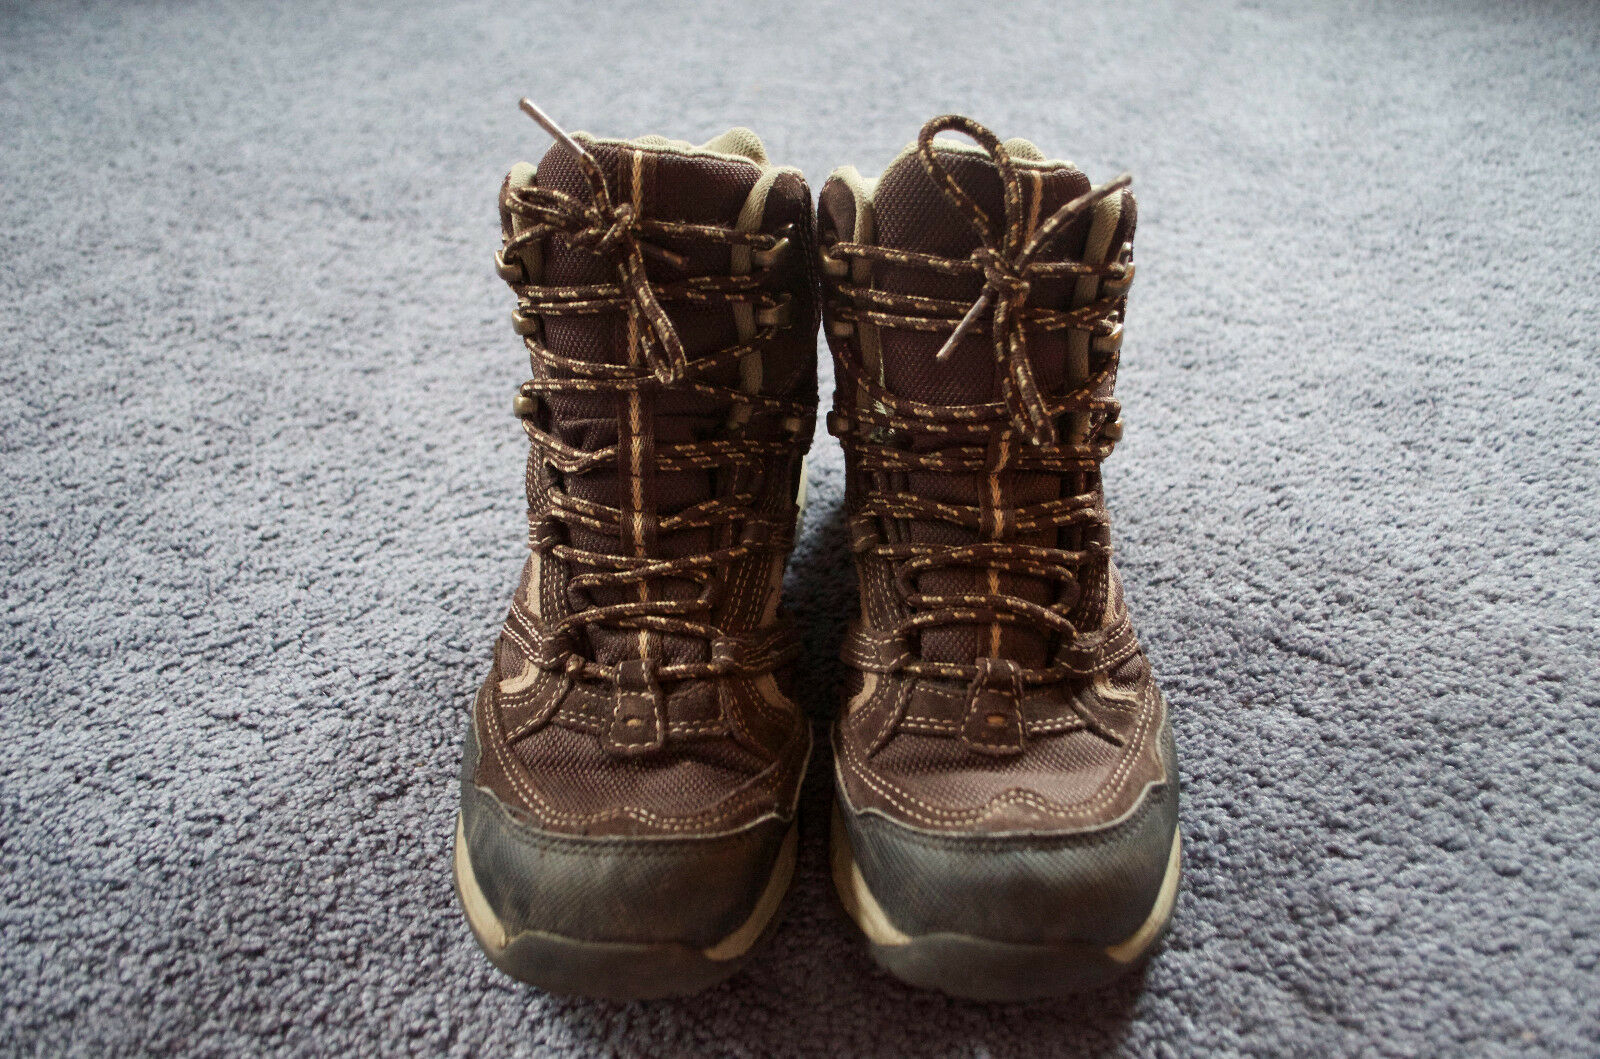 LL Bean Tek 2.5 Waterproof Durable Hiking Boots size 7.5 and size 10